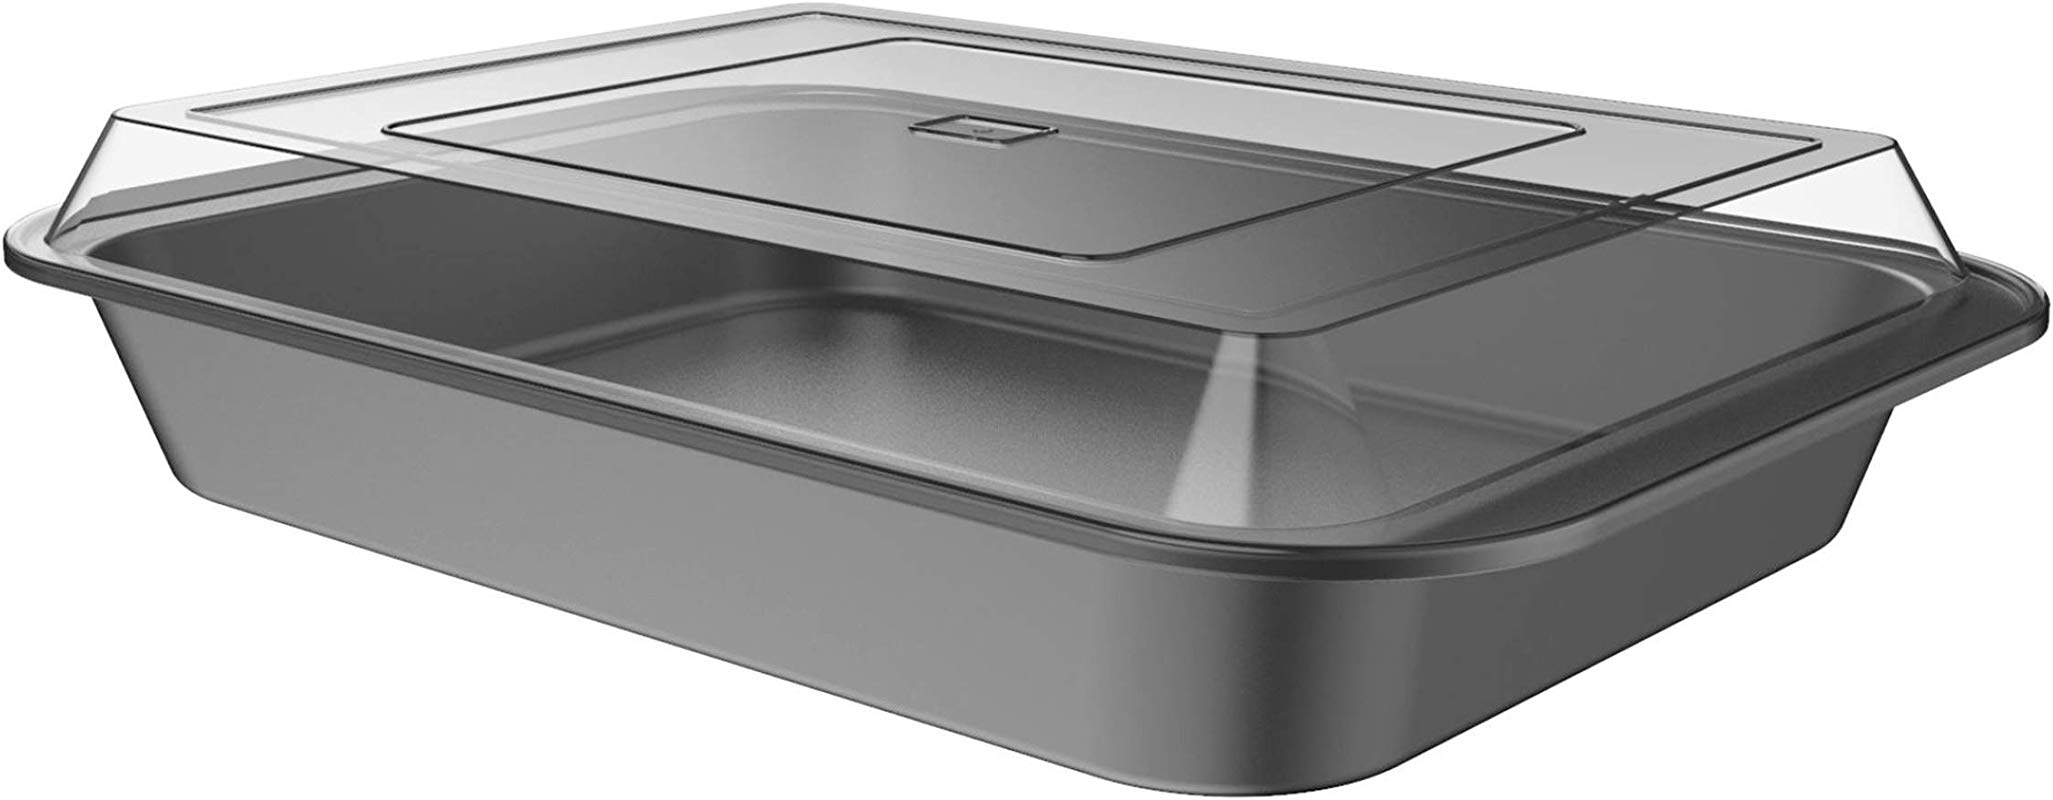 Classic Cuisine 82 KIT1102 Baking Pan With Lid 2PC Nonstick Rectangular Bakeware Set 9 X13 For Sheet Cake Brownies Bars Lasagna And More Kitchen Cookware